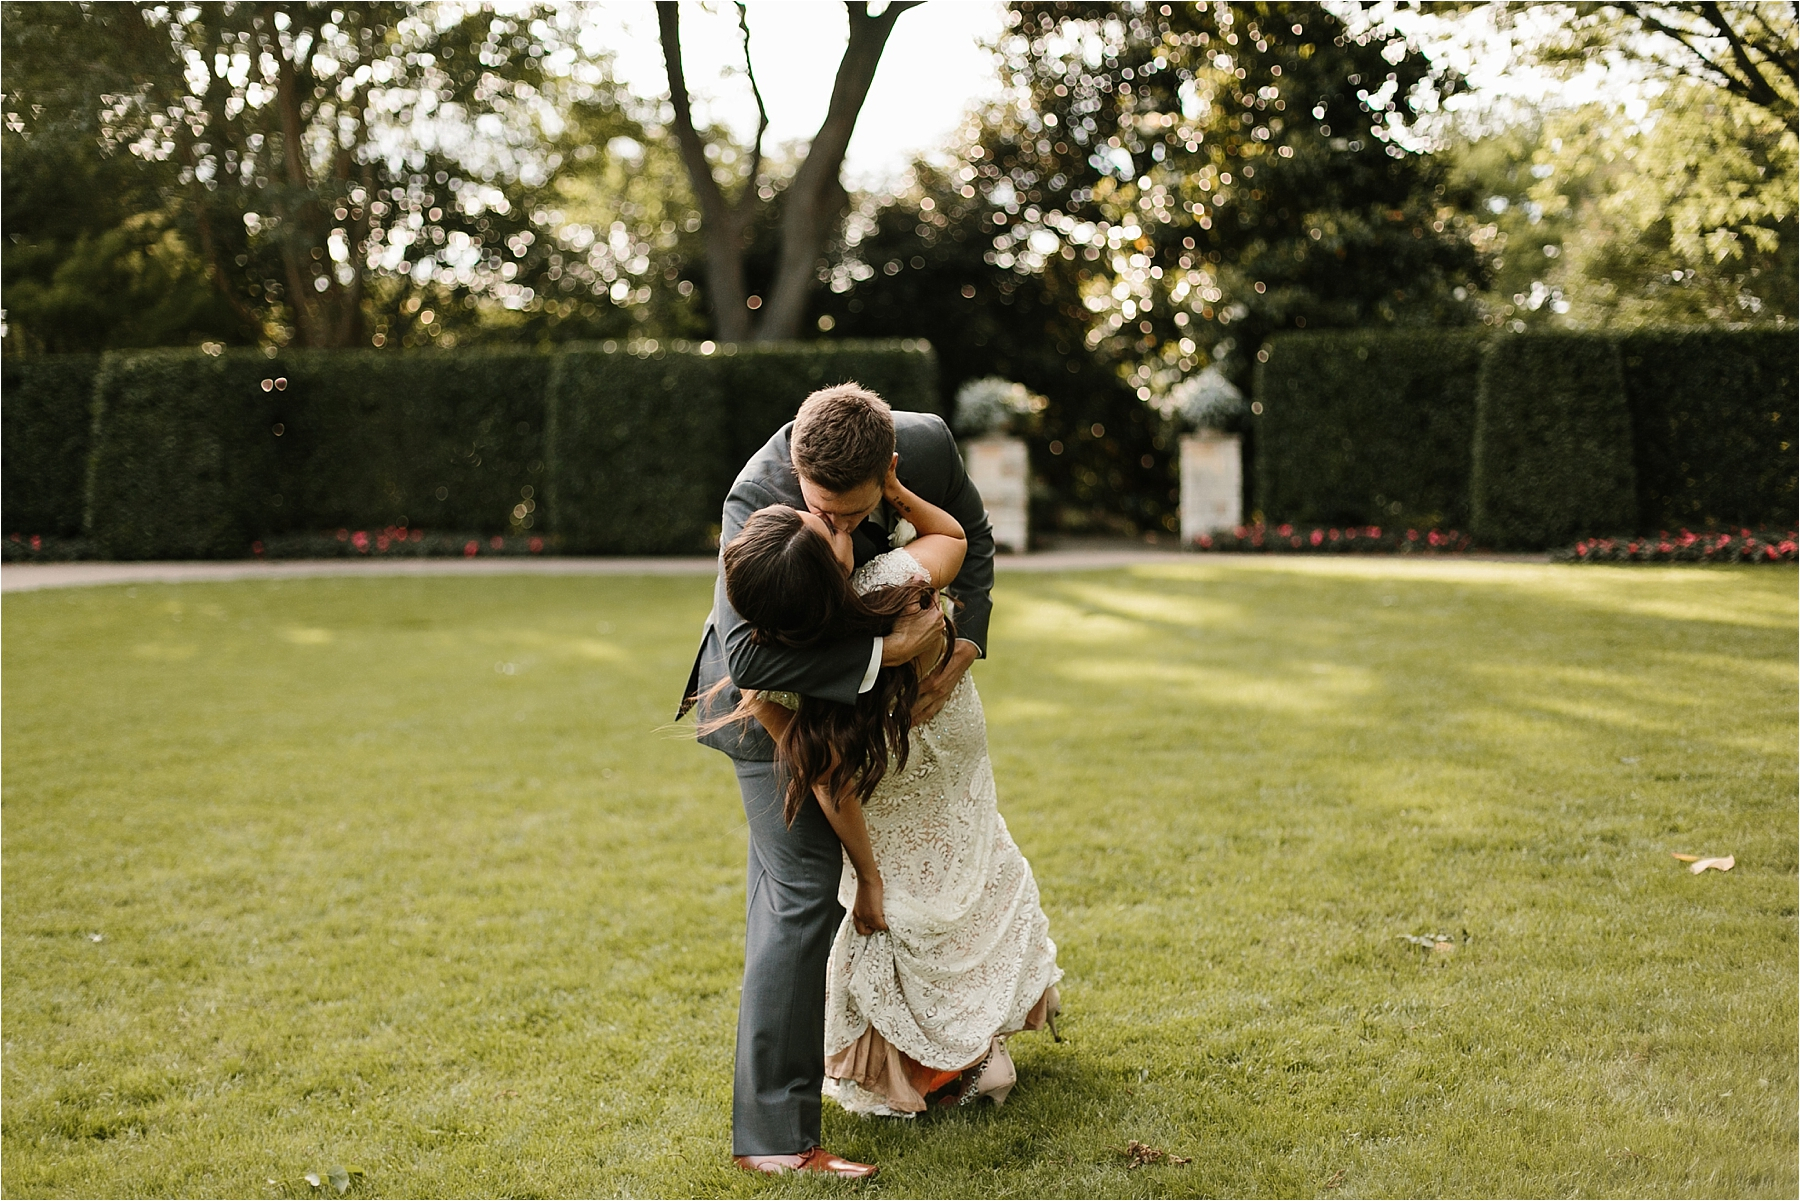 Devyn + Caden __ a Dallas Arboretum Garden Style Wedding by North Texas Wedding Photographer Rachel Meagan Photography __ 087